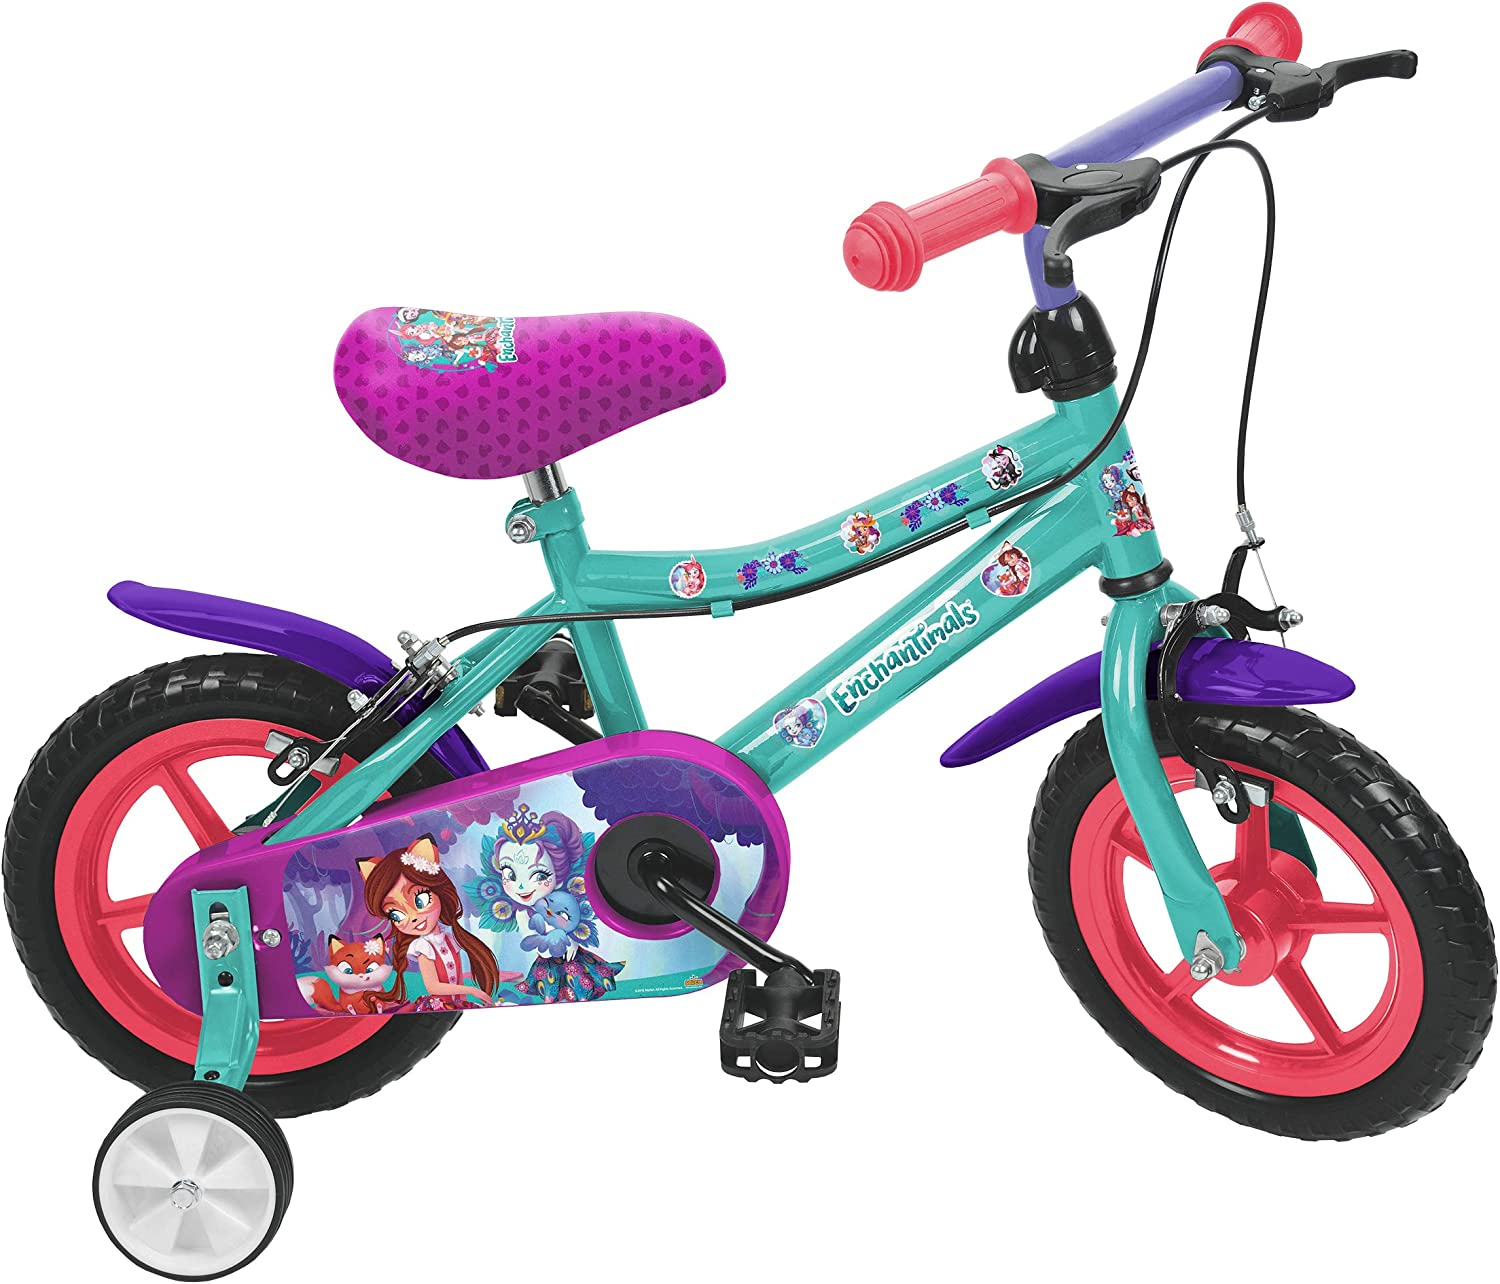 Enchantimals Saica 8821, Bicicleta 12